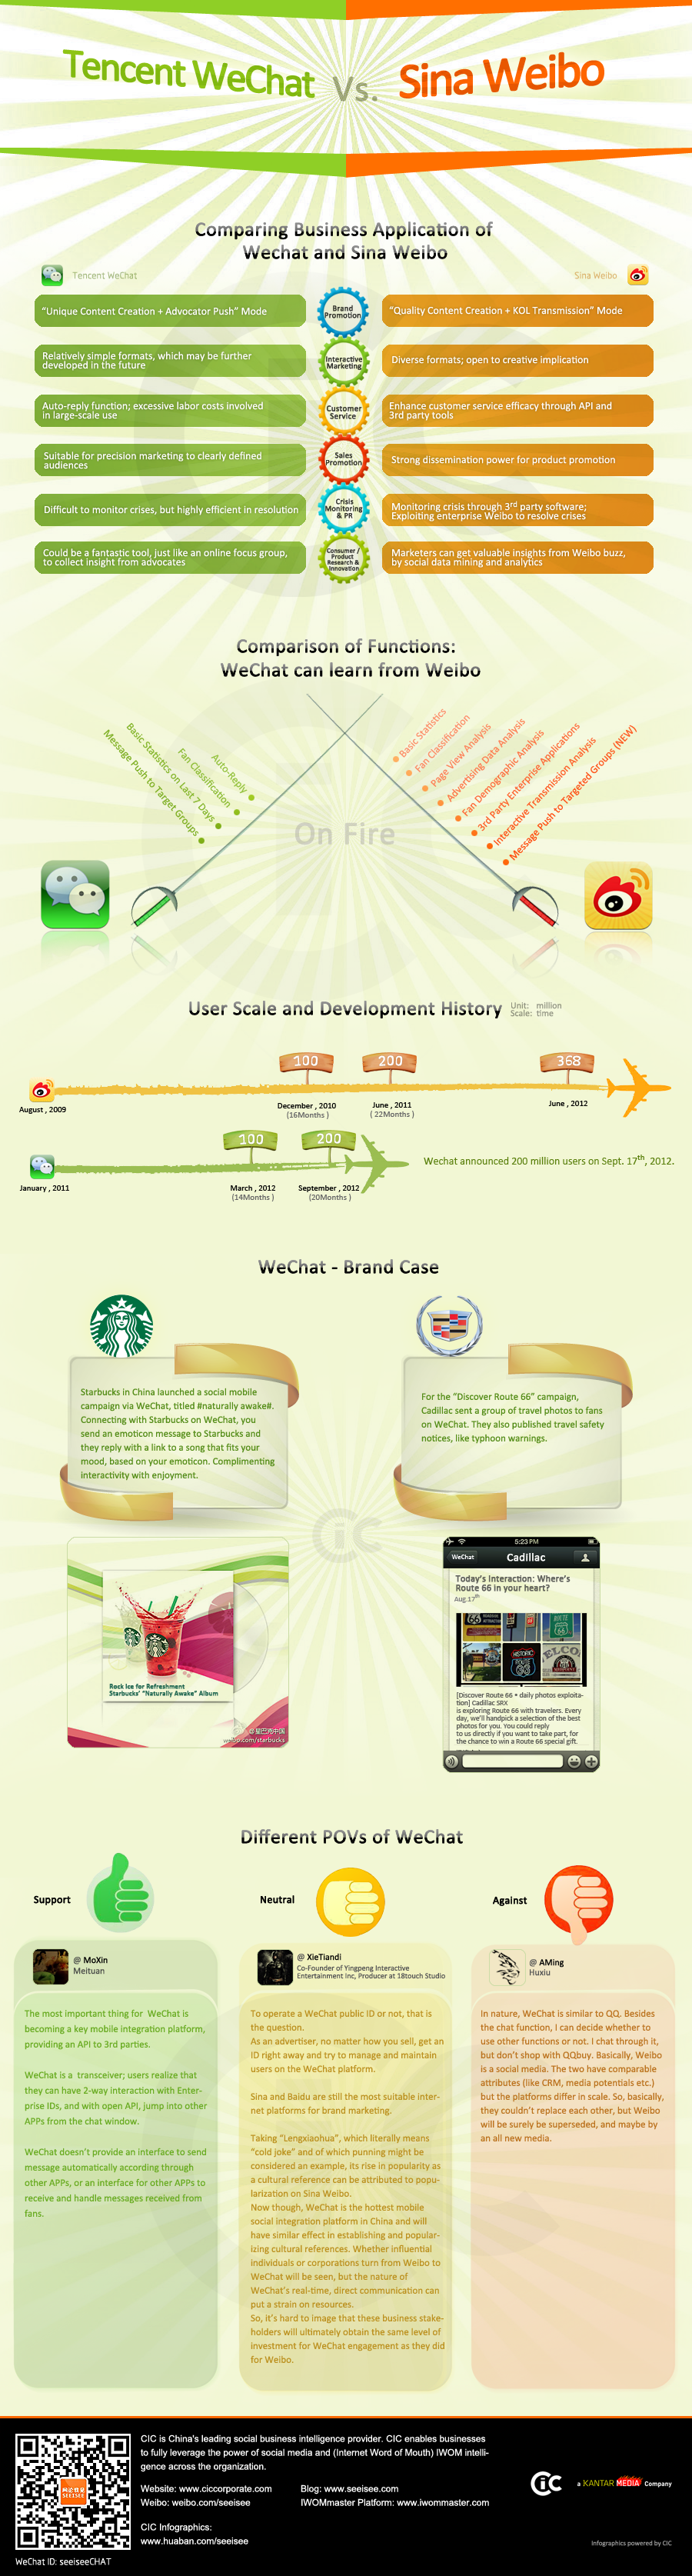 weibo-wechat-business-infographic-china